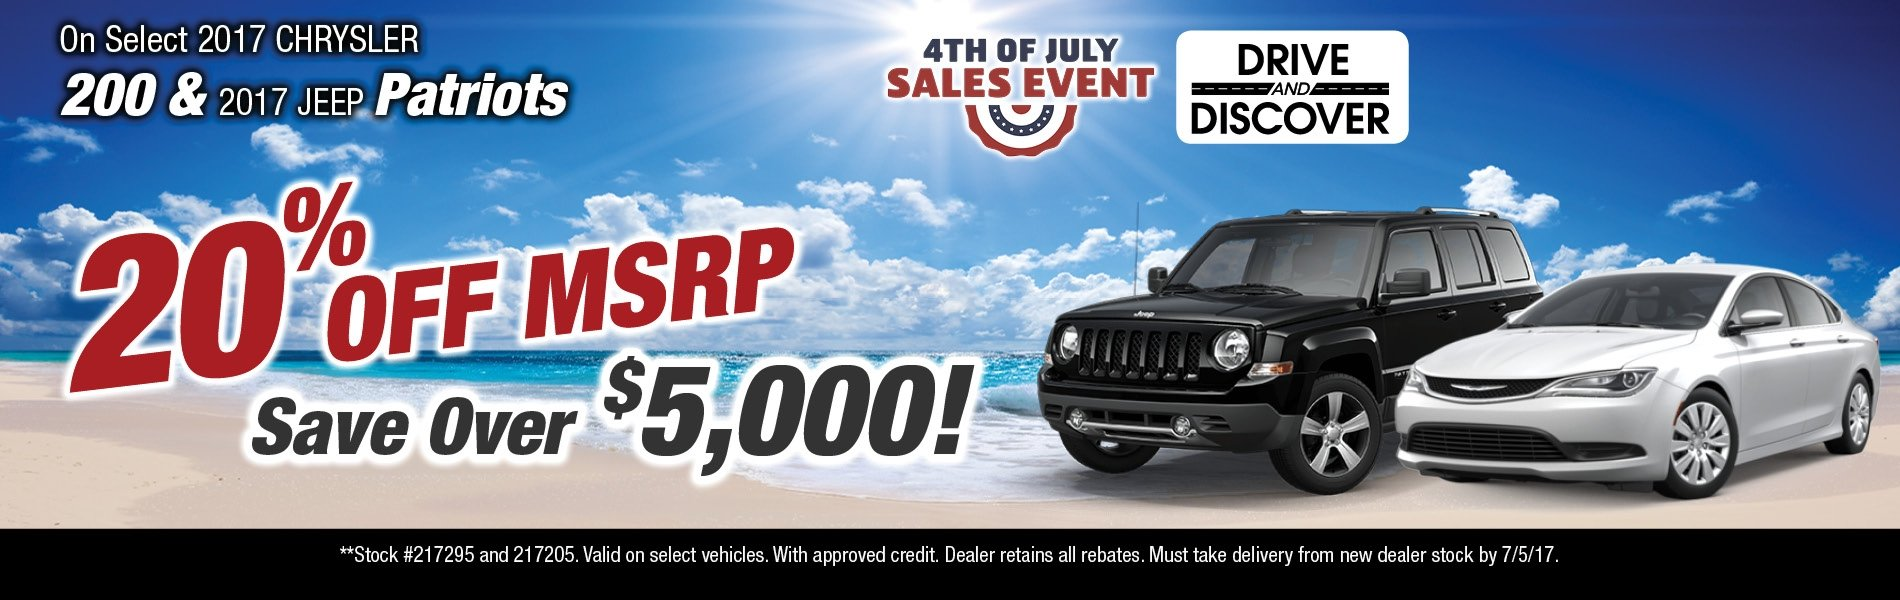 2017 Chrysler and Jeep Patriot Special available at Thomson Chrysler Jeep in Thomson, GA